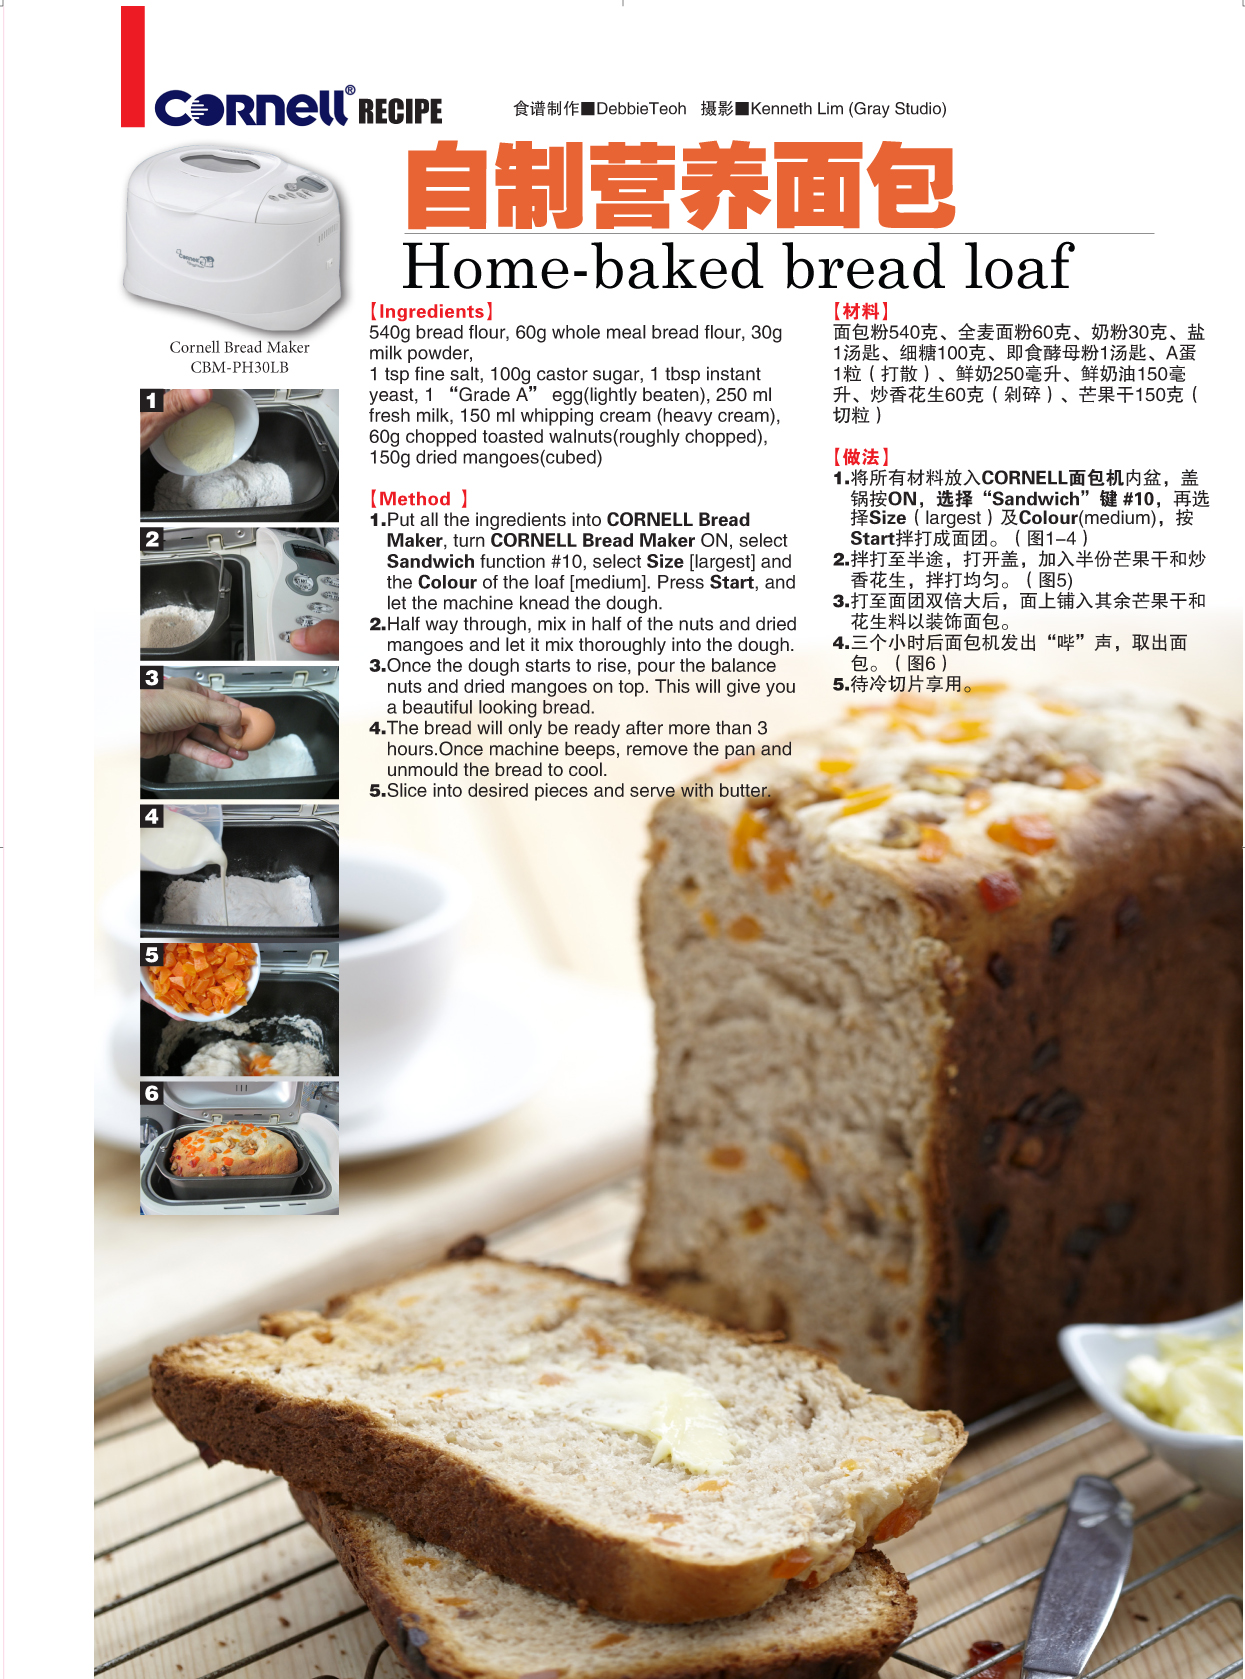 Home-baked Bread Loaf